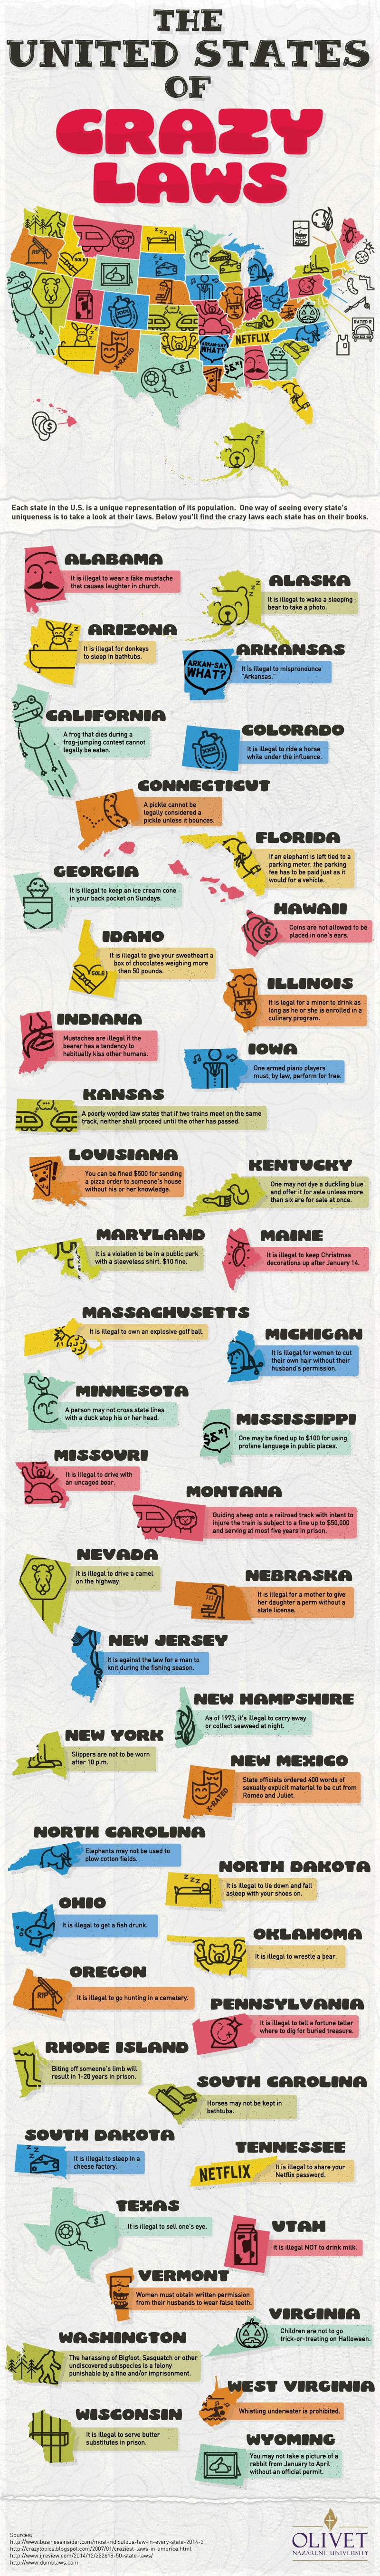 The Weirdest Outdated Laws From Each State